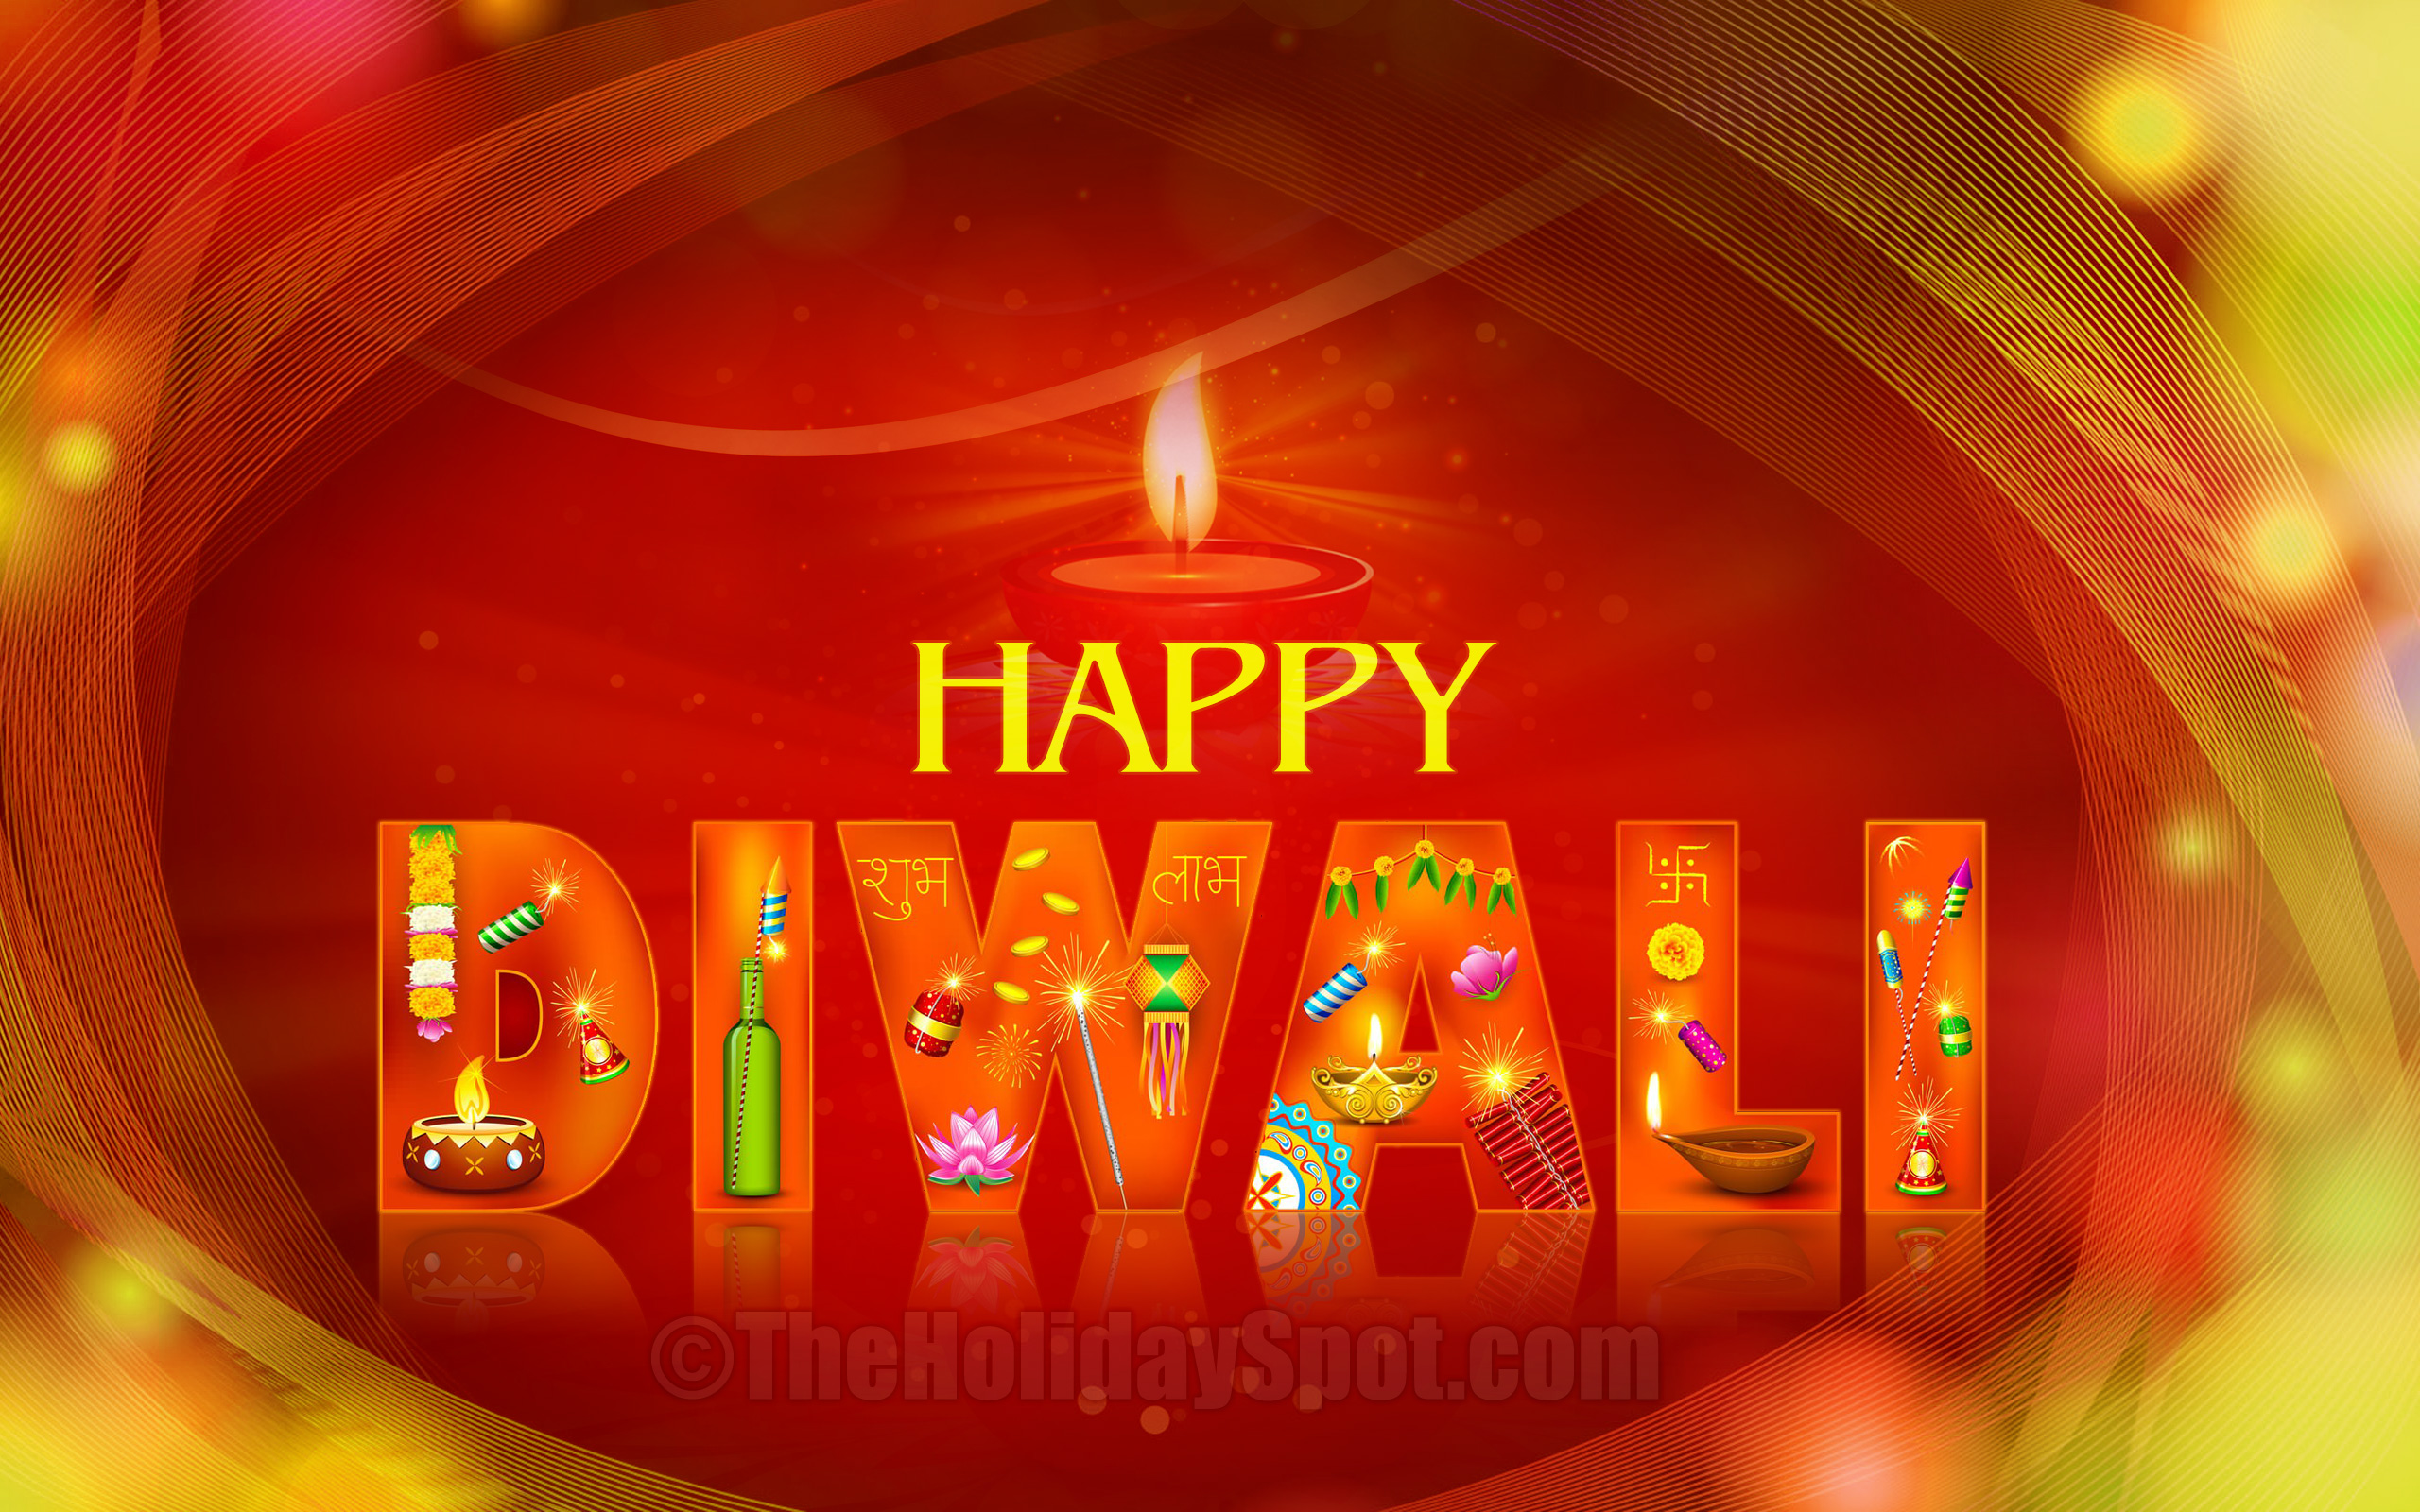 Wallpaper download diwali - Happy Diwali Wallpaper